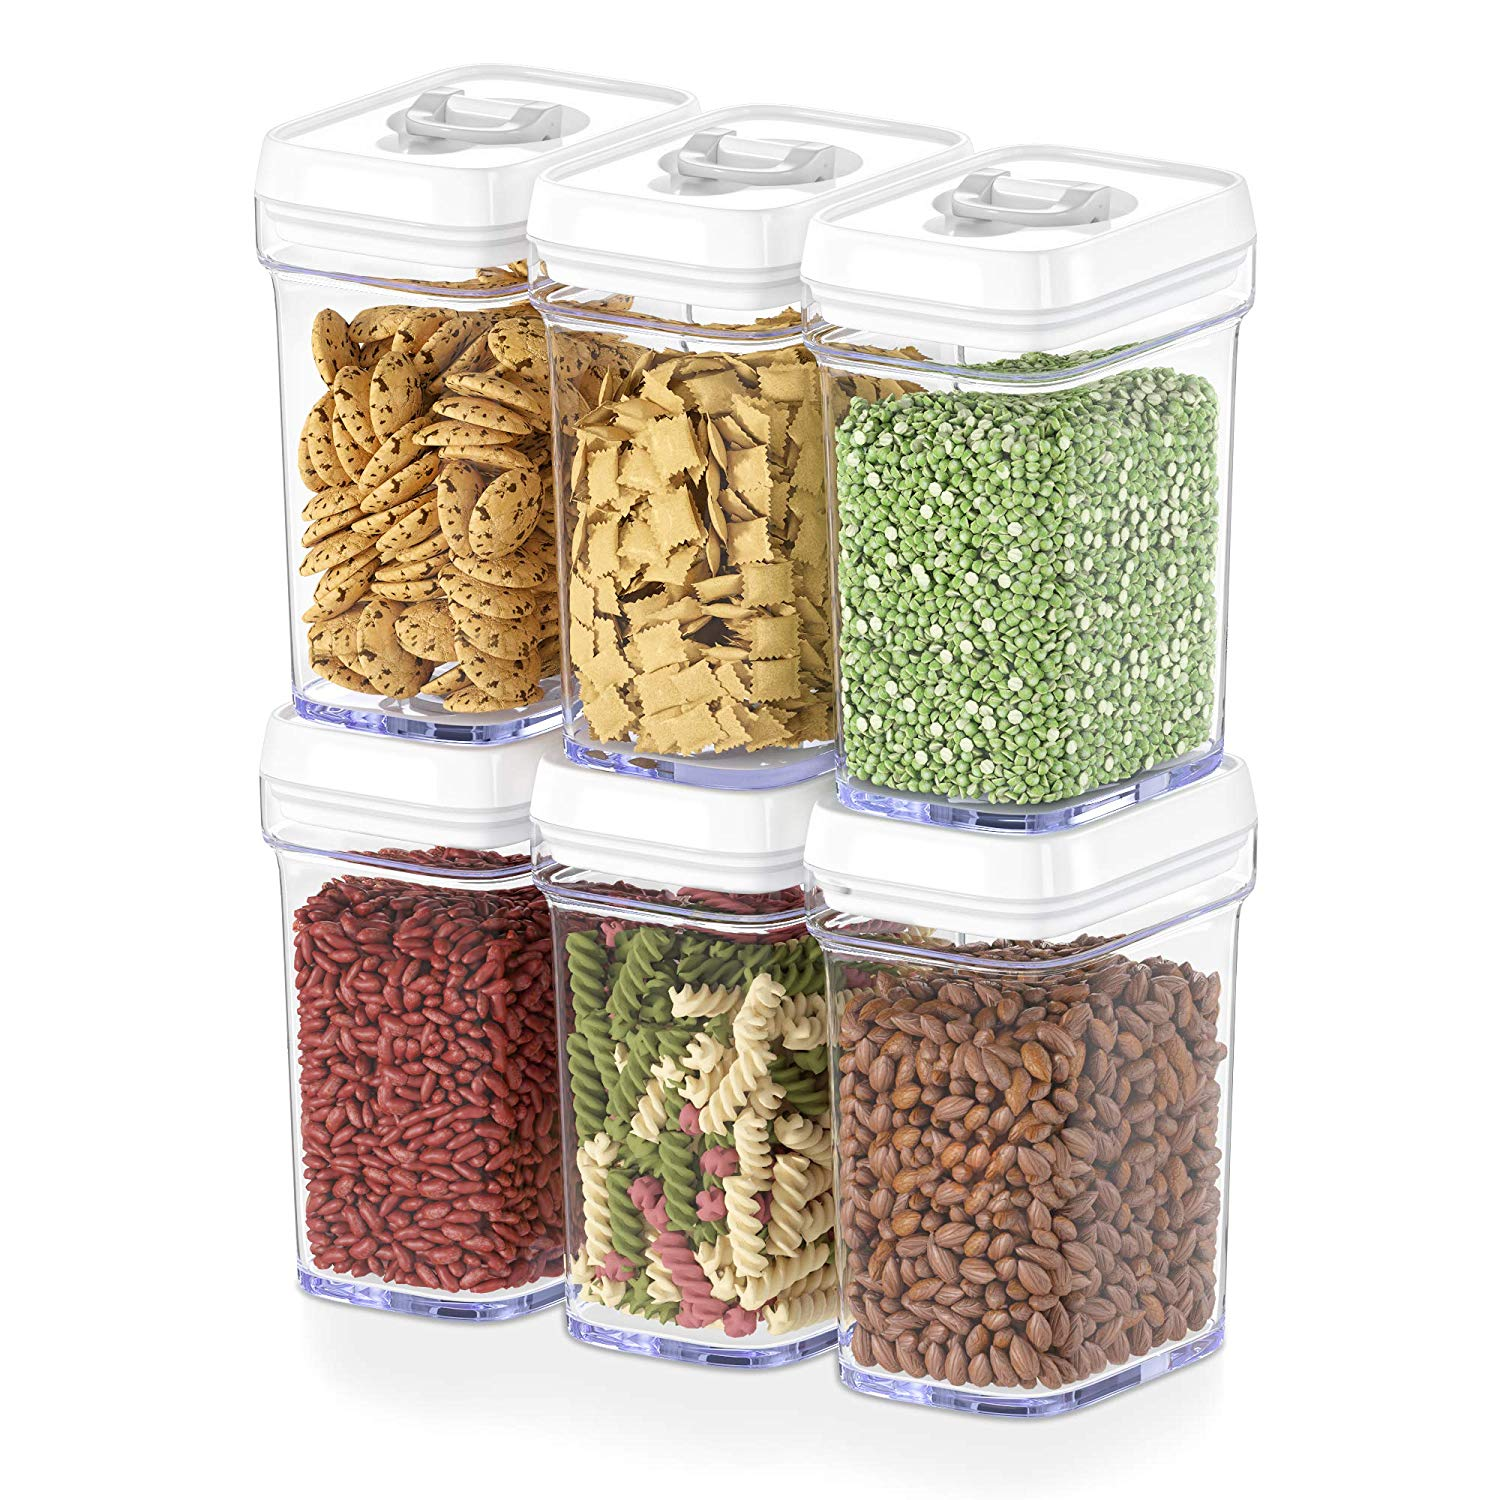 Snapware 10 Cup Rectangle Airtight Food Storage Container # 1098431